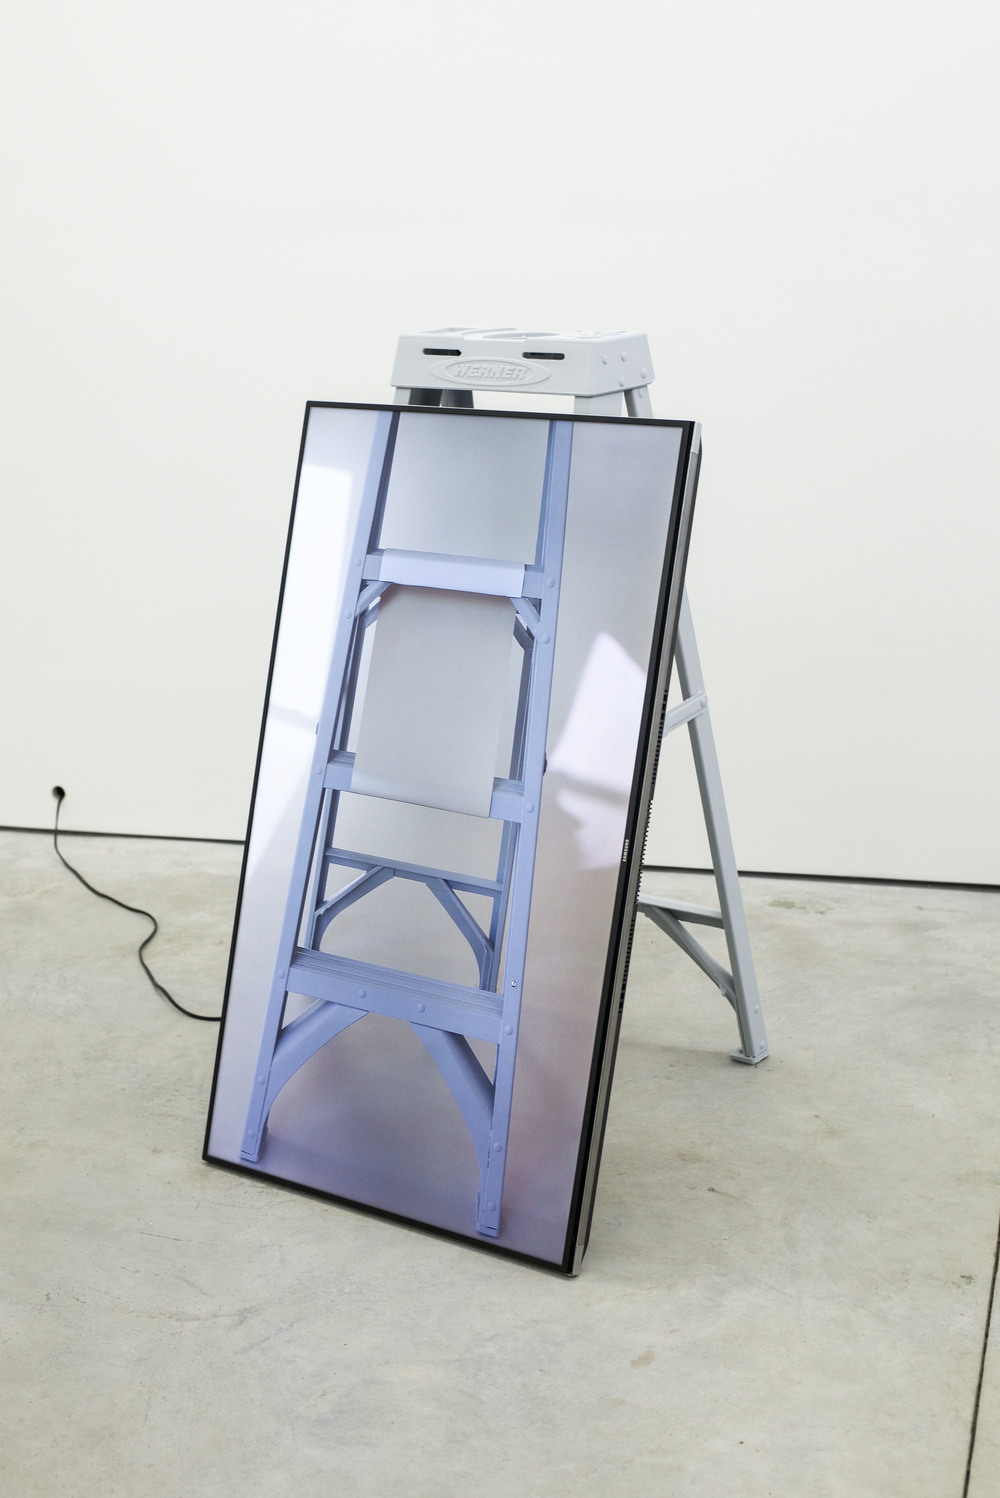 Scott Nedrelow   Viewfinder Sculpture   2016  Single-channel ultra high-definition video, inkjet print, ladder  46 x 25 x 30 in/ 116.8 x 63.5 x 76.2 cm